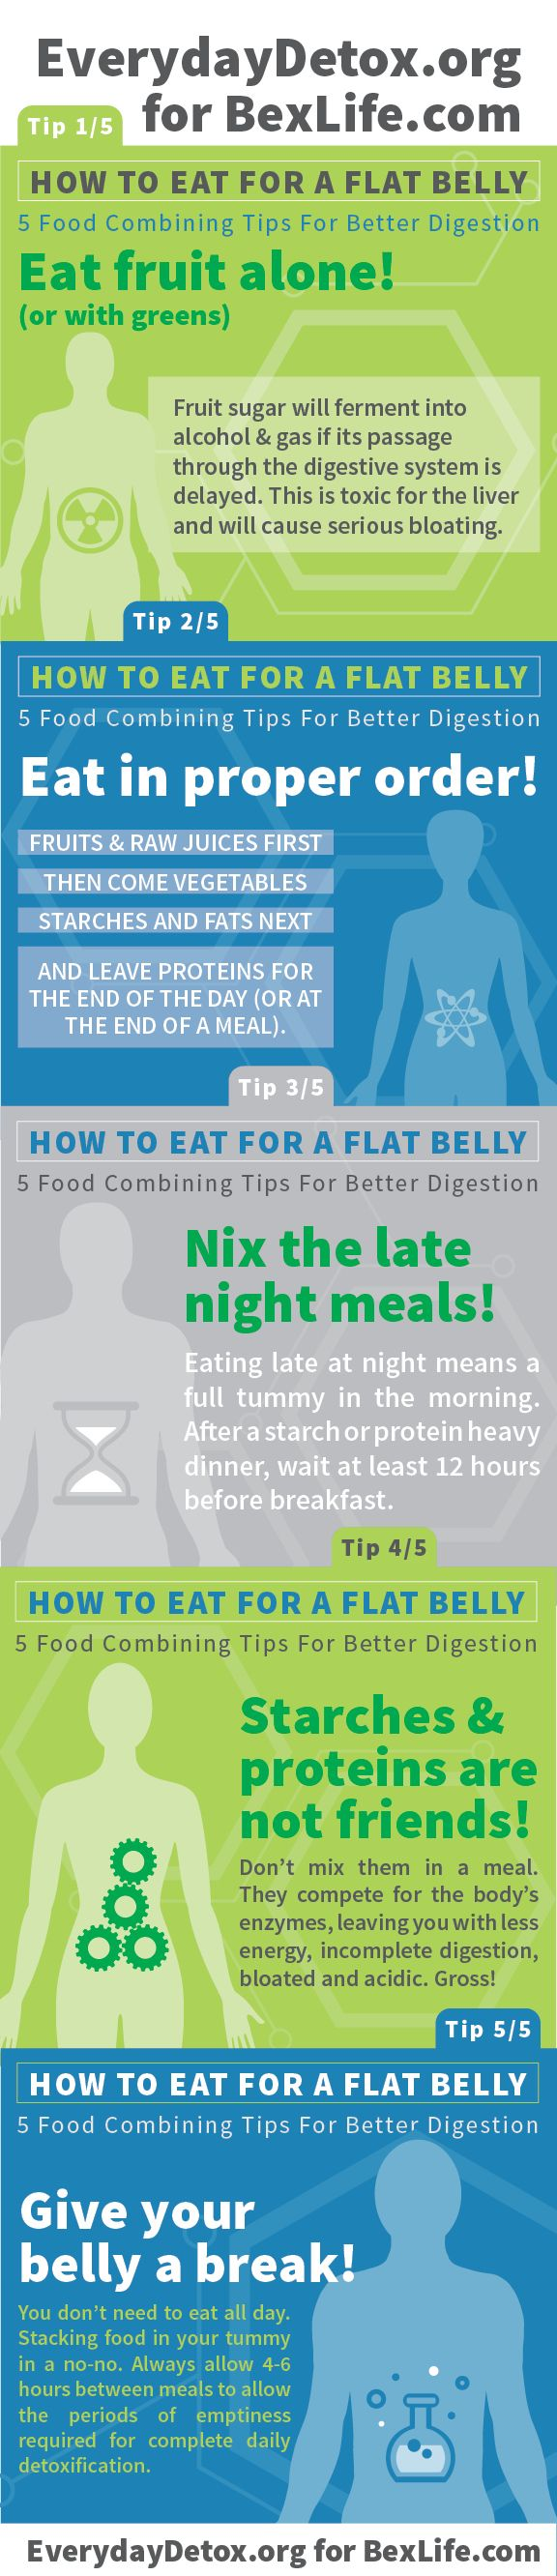 How to Get a Flat Belly in 5 Days: 5 Easy Diet Tips (VIDEO